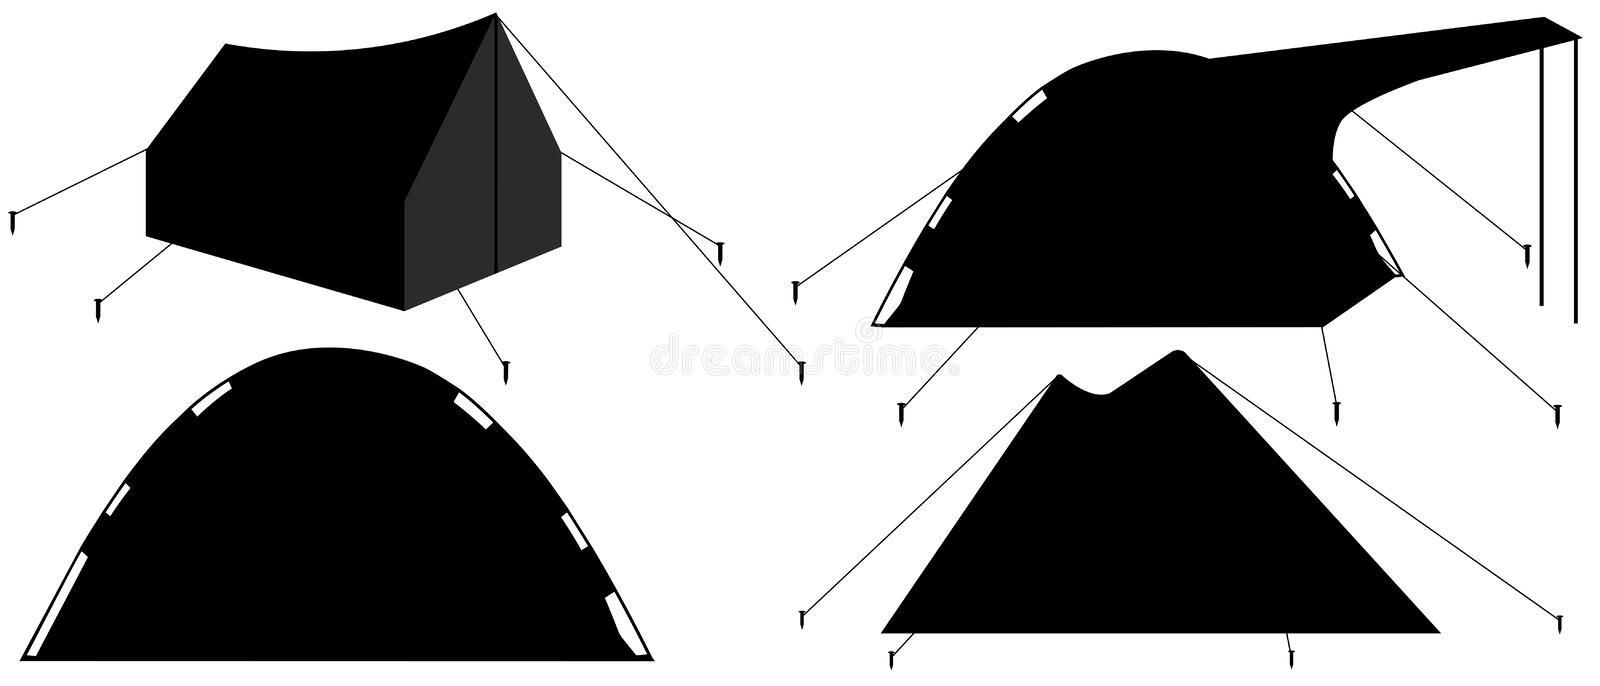 Camping tent silhouette. Tourist camp tents collection. Set Vector Illustration.  stock illustration